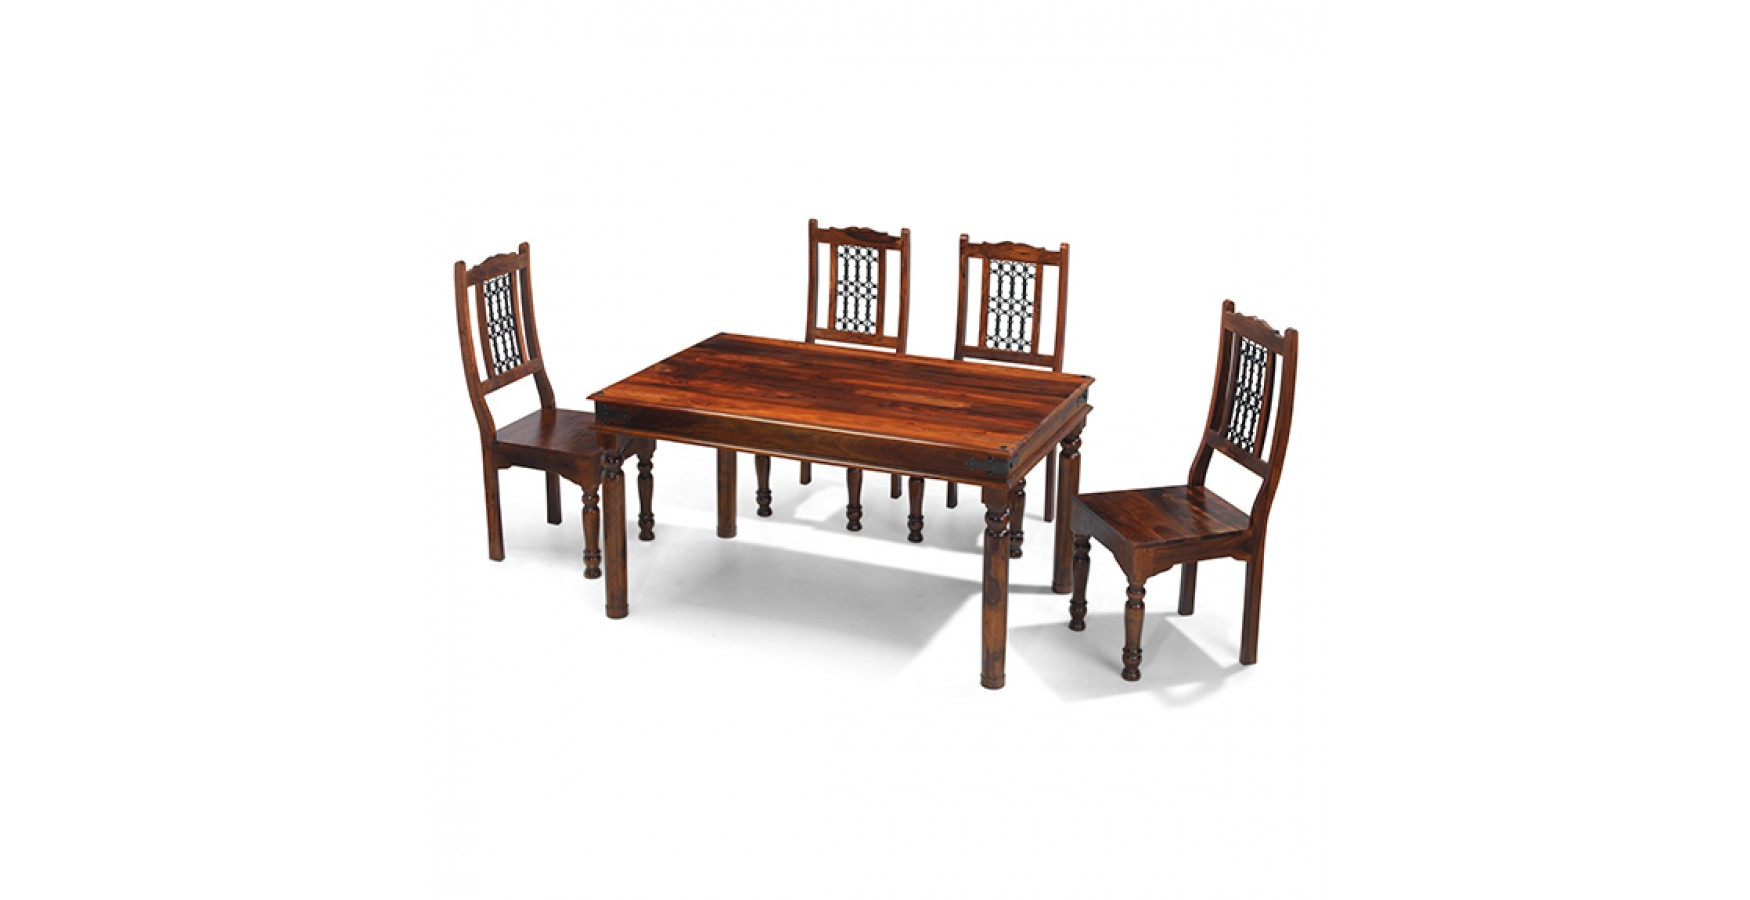 Jali sheesham 140 cm thakat dining table and 4 chairs for Sheesham dining table